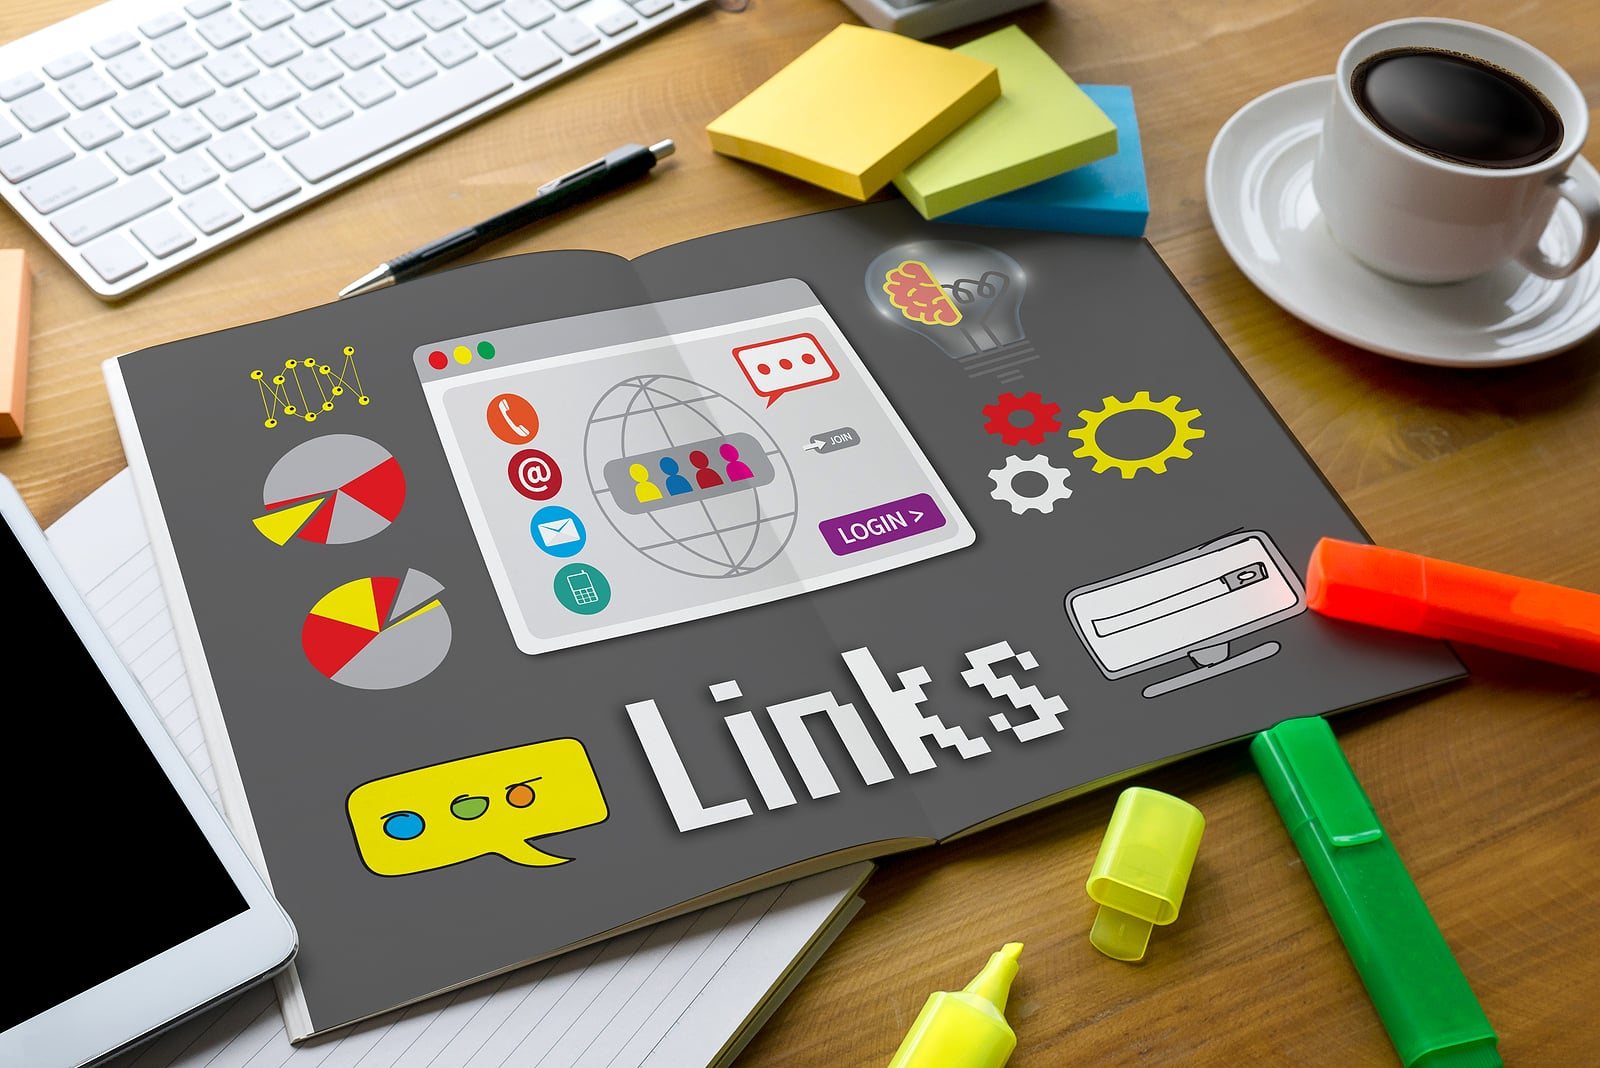 SEO interlinking pages is a good SEO practice